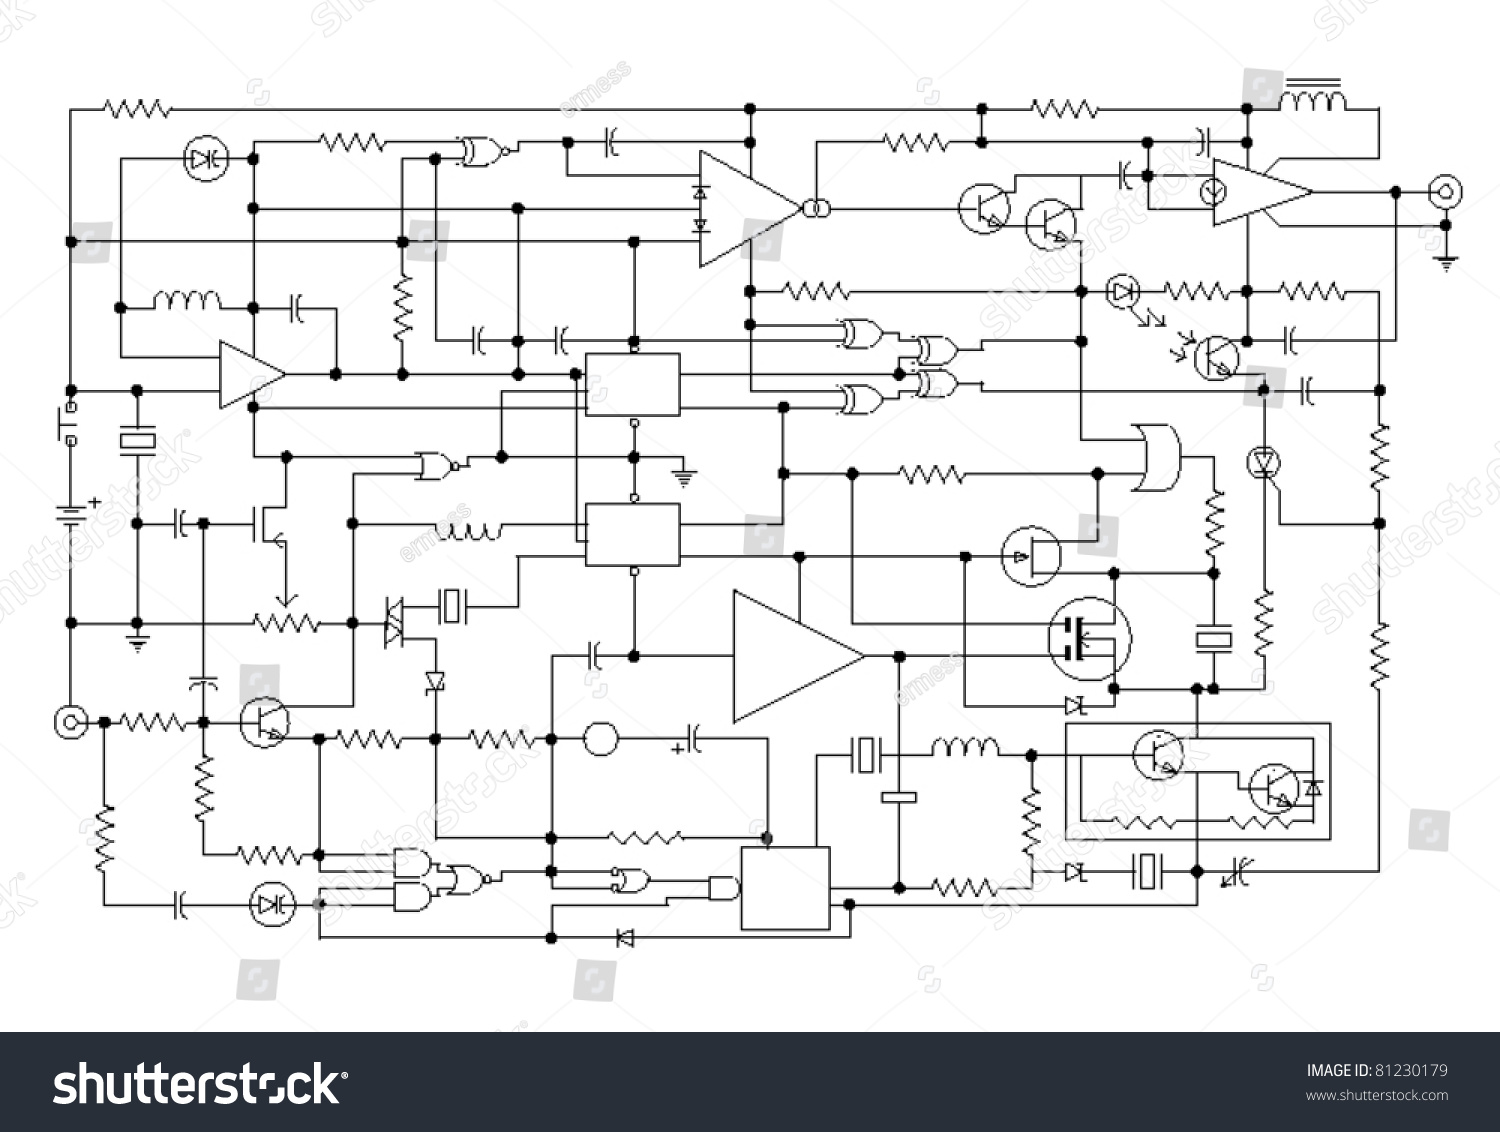 Schematic Diagram Project Of Electronic Circuit Graphic Design Circuits Projects Diagrams Free Royalty 81230179 Stock Photo